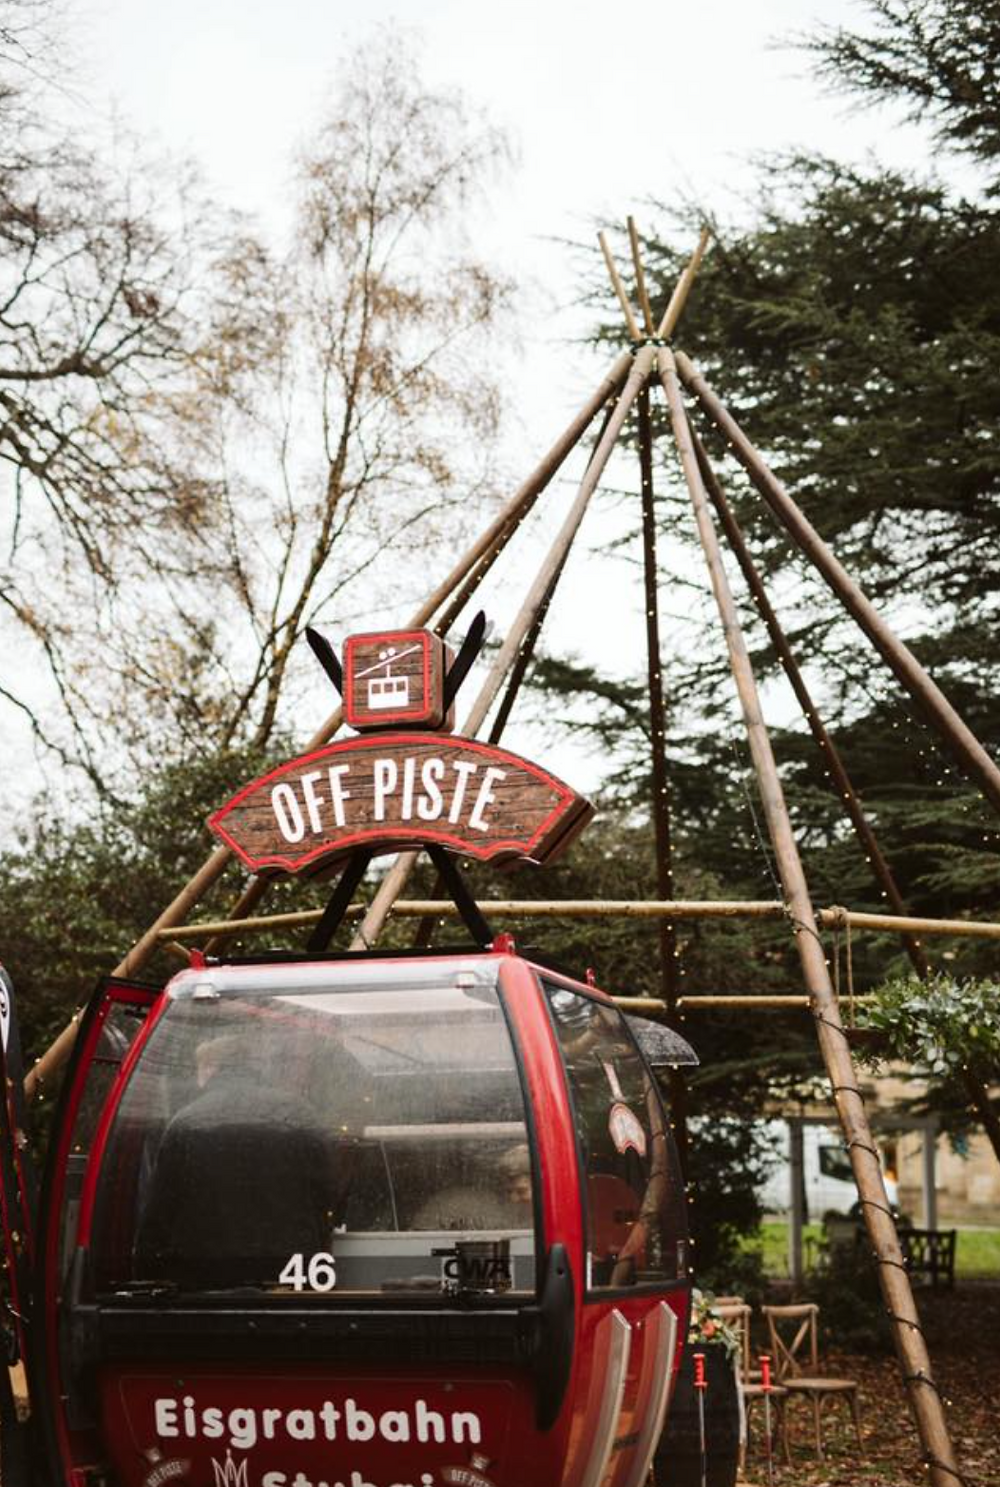 Tipis for weddings, teepees for weddings, tipi wedding hire, teepee wedding hire, teepee tent, tipi tent, teepee hire wedding, tipi hire wedding, wedding tipi hire, wedding teepee hire, tipi hire cost teepee hire cost, tipi tent wedding, wedding teepee hire, tipi wedding yorkshire, teepee wedding yorkshire, teepee wedding hire prices, tipi wedding hire prices, teepee hire wedding, tipi hire wedding, tipi wedding hire, wedding teepee